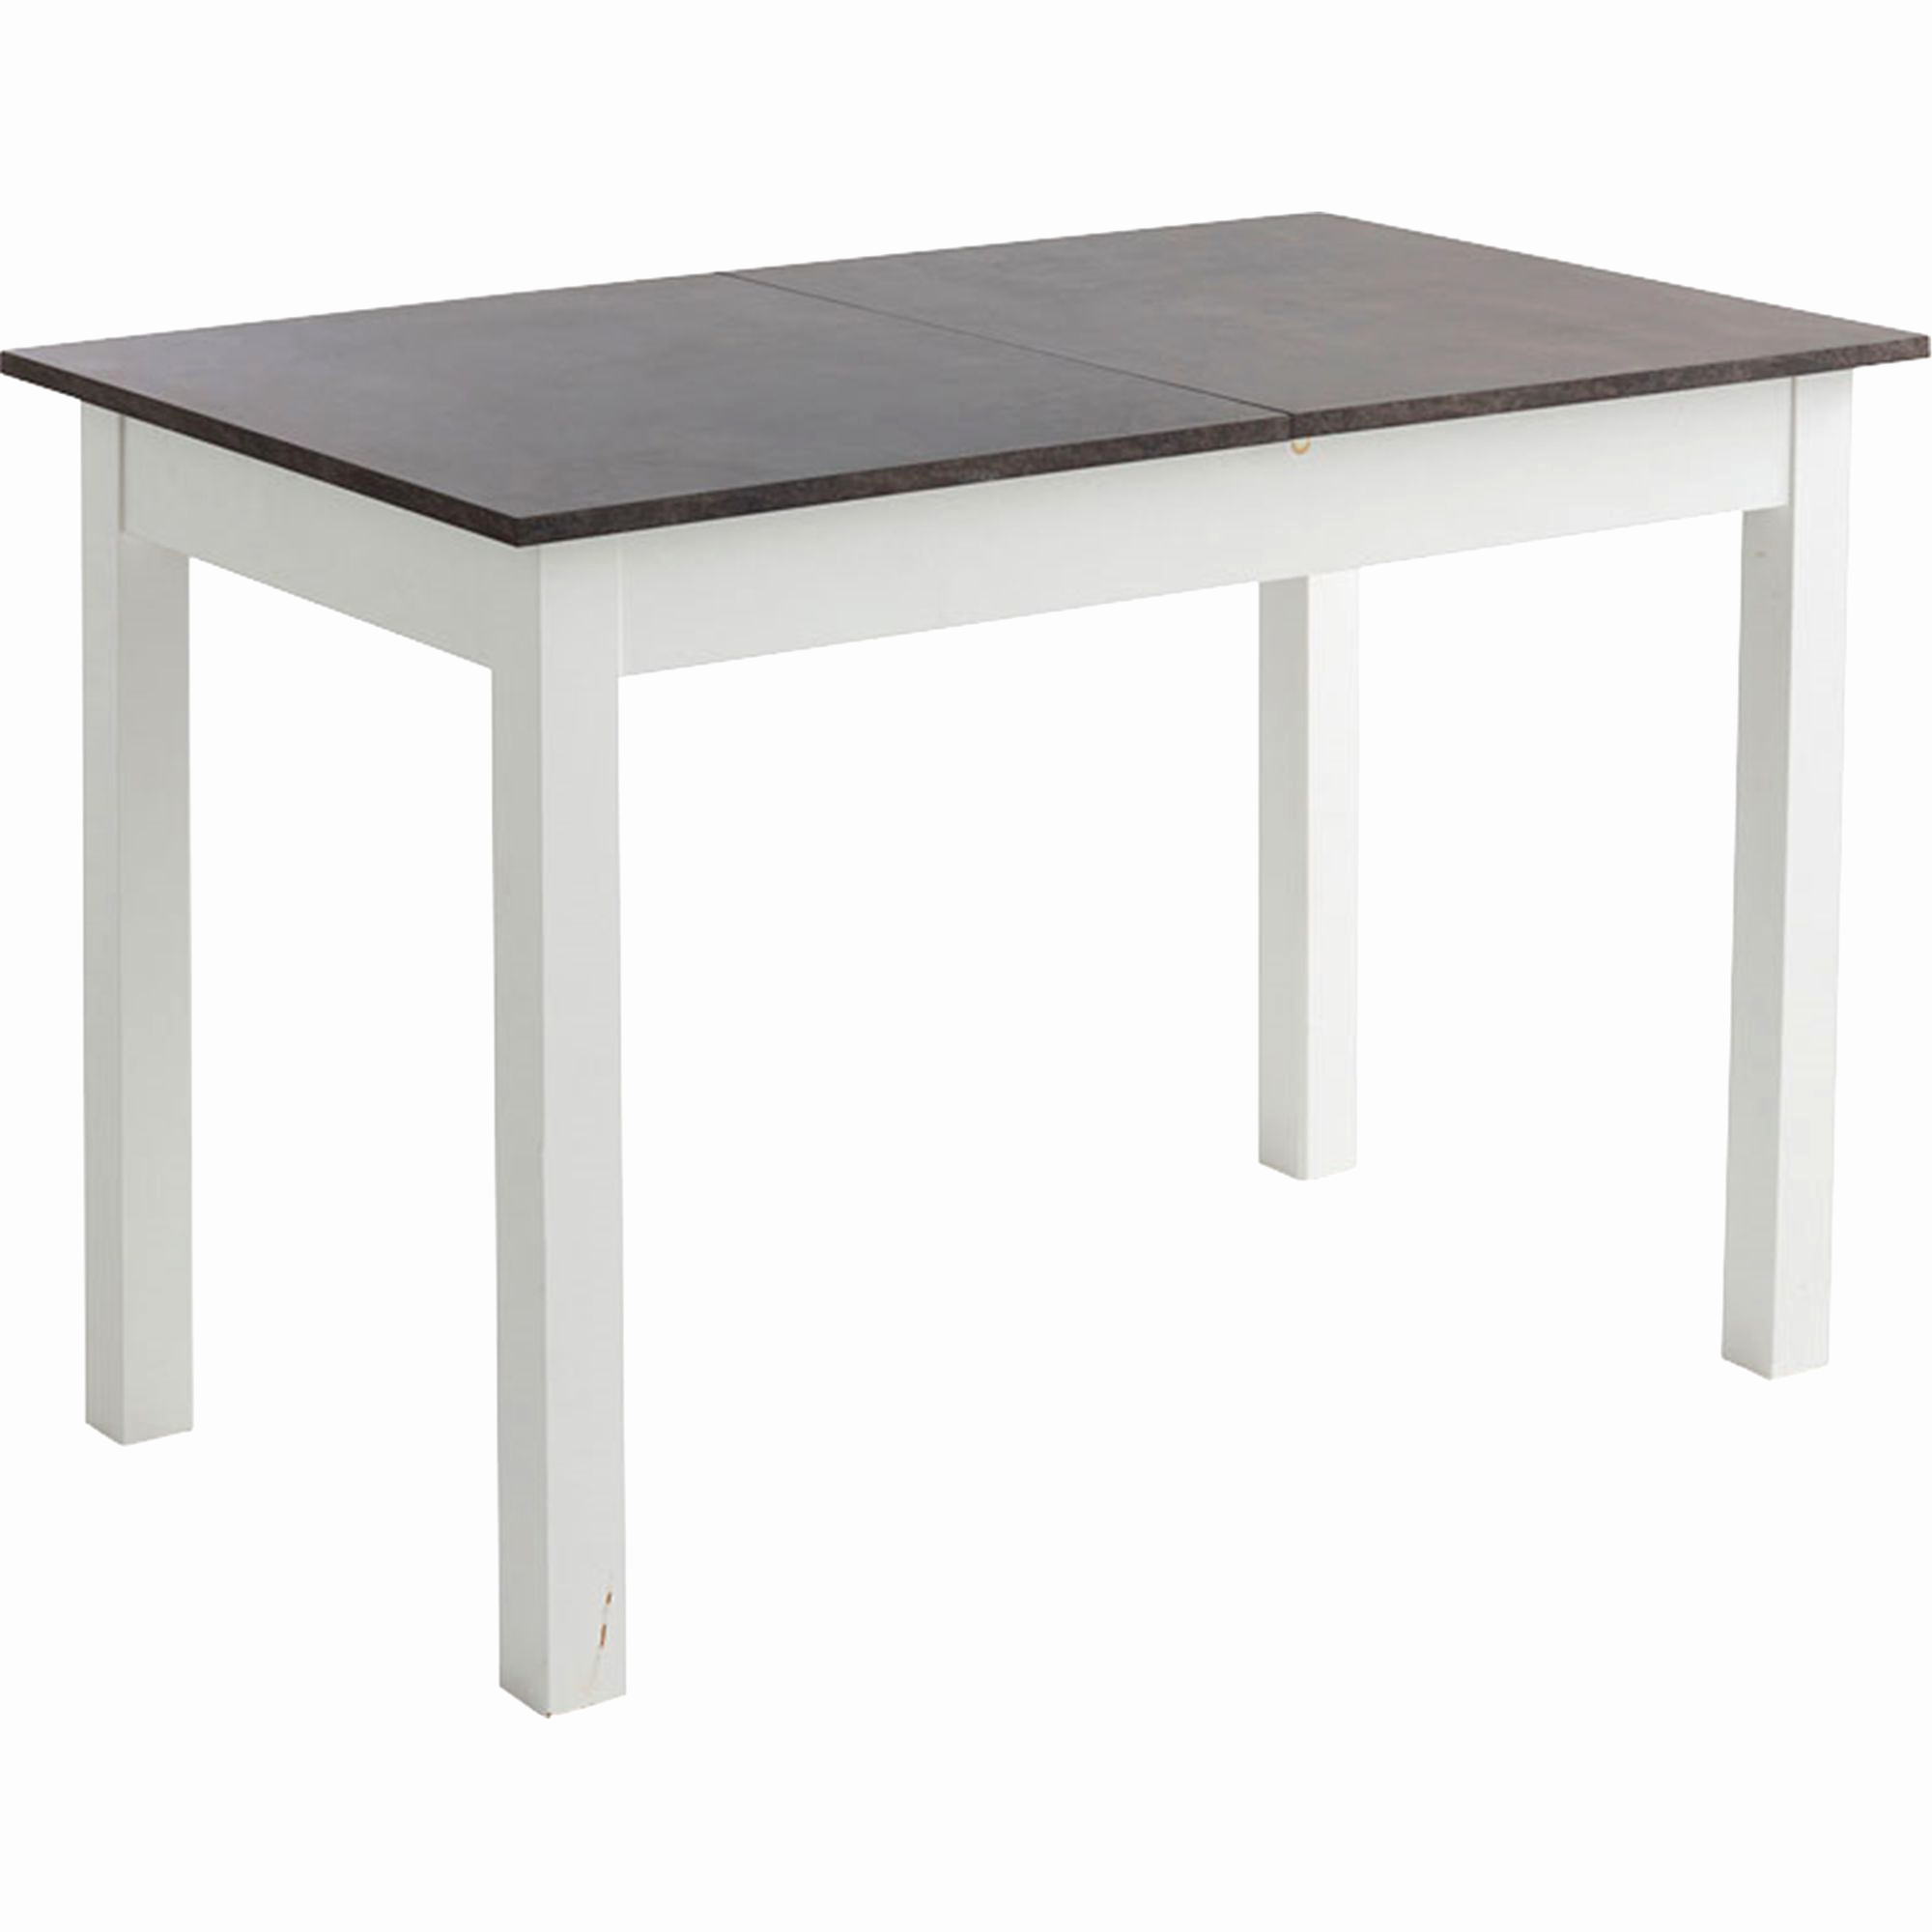 Table Alinea Extensible Frais Mange Debout Alinea Good Excellent Table Haute Cuisine but Of 28 Frais Table Alinea Extensible